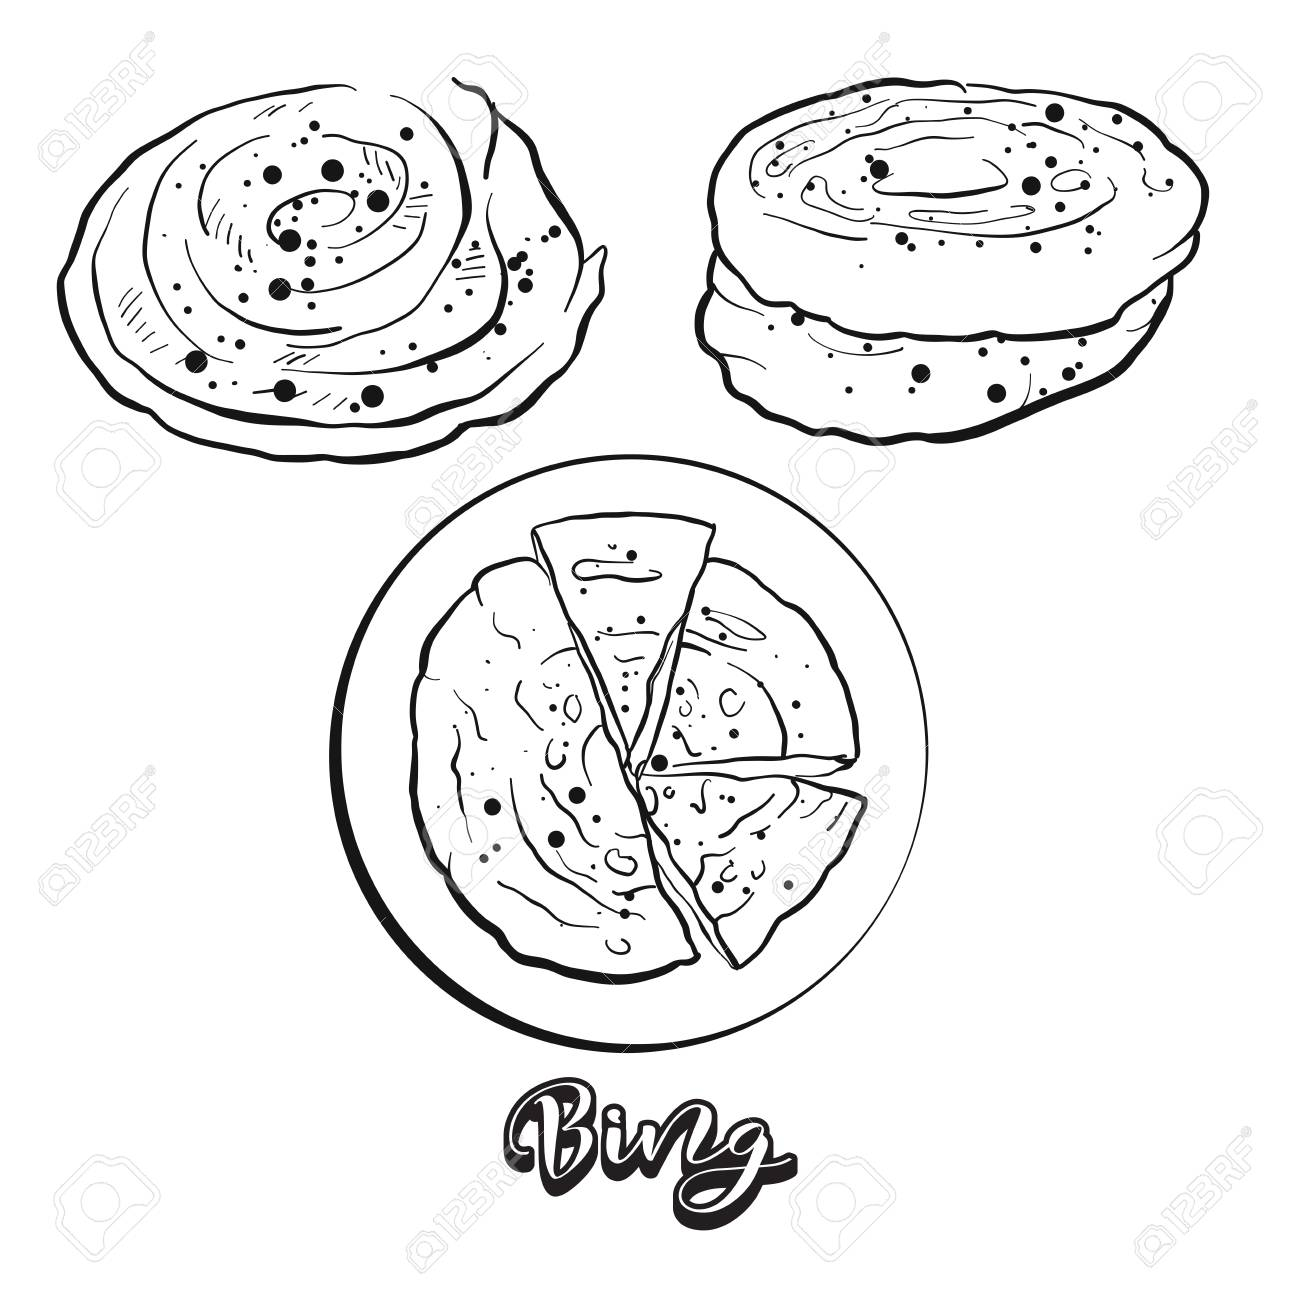 hight resolution of hand drawn sketch of bing bread vector drawing of flatbread food usually known in